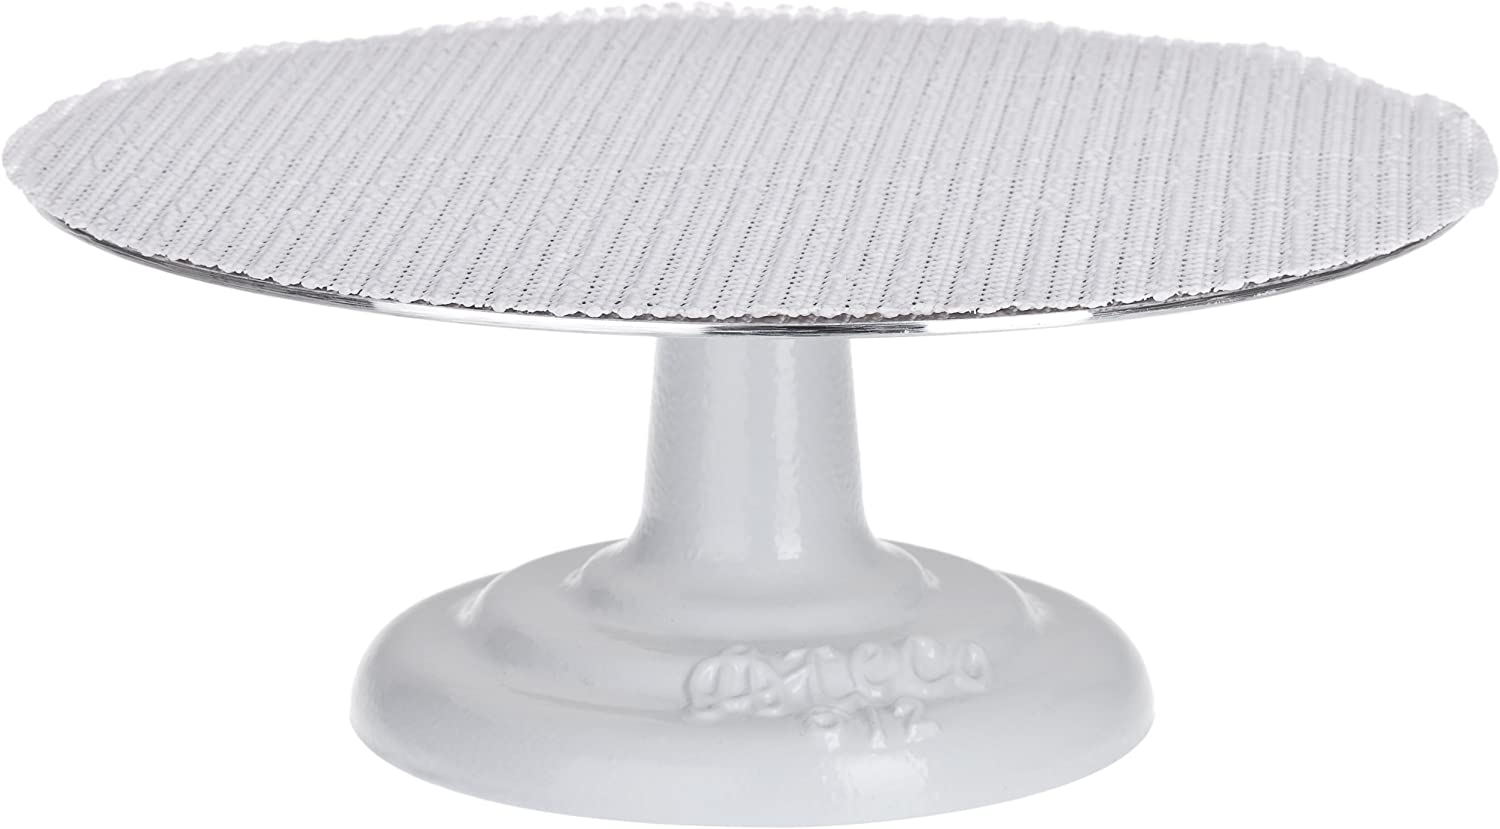 Ateco 612 Revolving Cake Decorating Stand, 12  Round, Cast Iron Base with 1 8  Aluminum Top